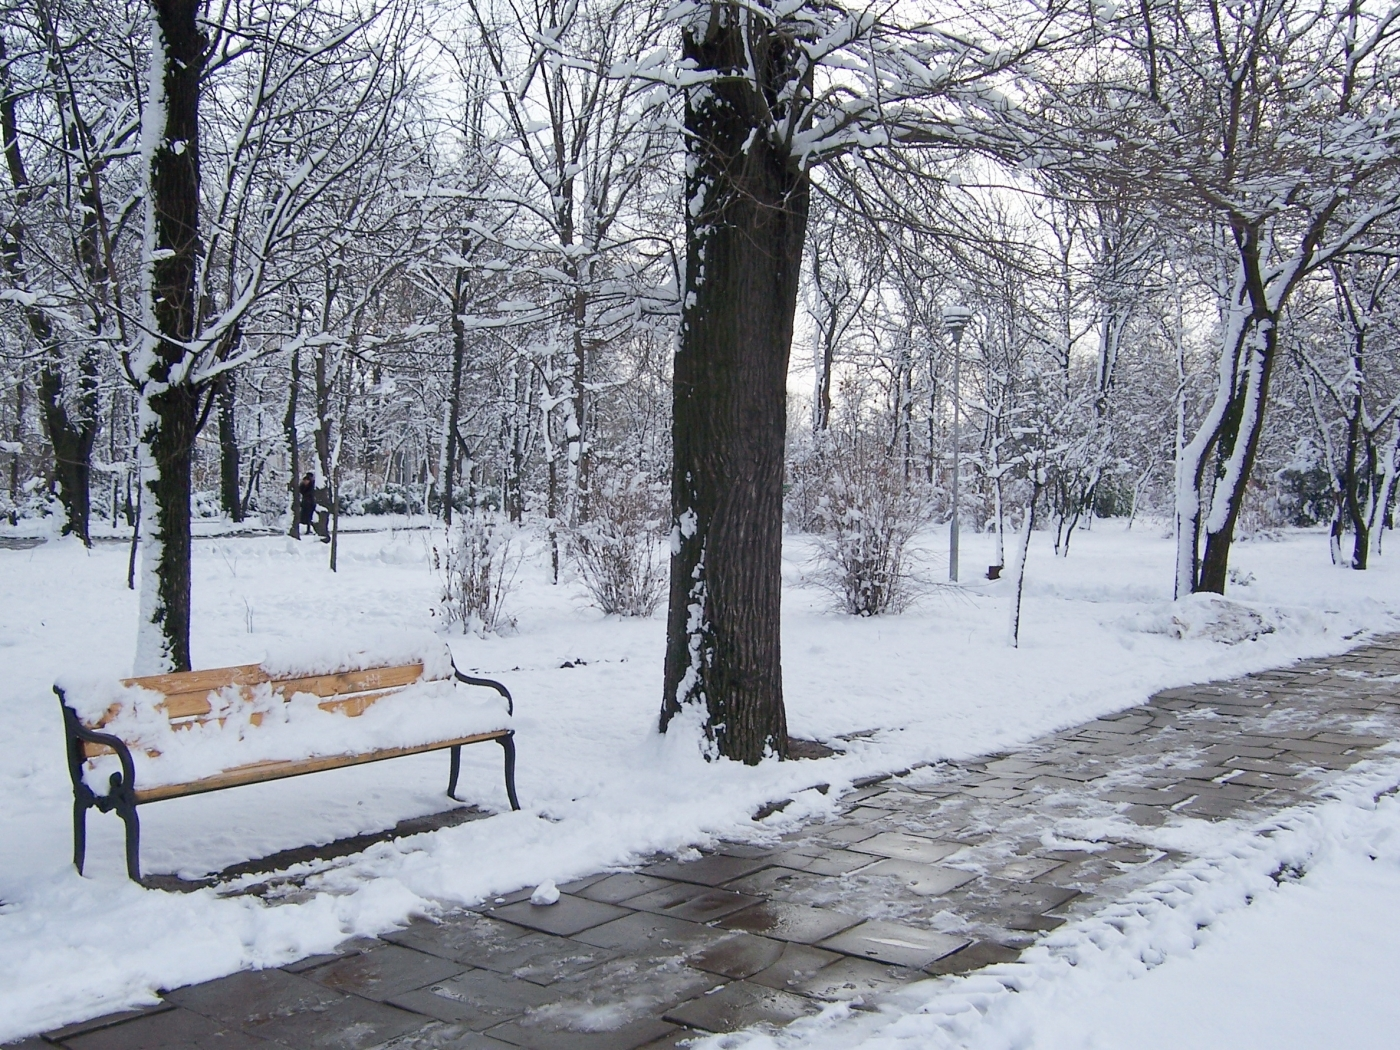 43490 download wallpaper Landscape, Winter, Snow screensavers and pictures for free